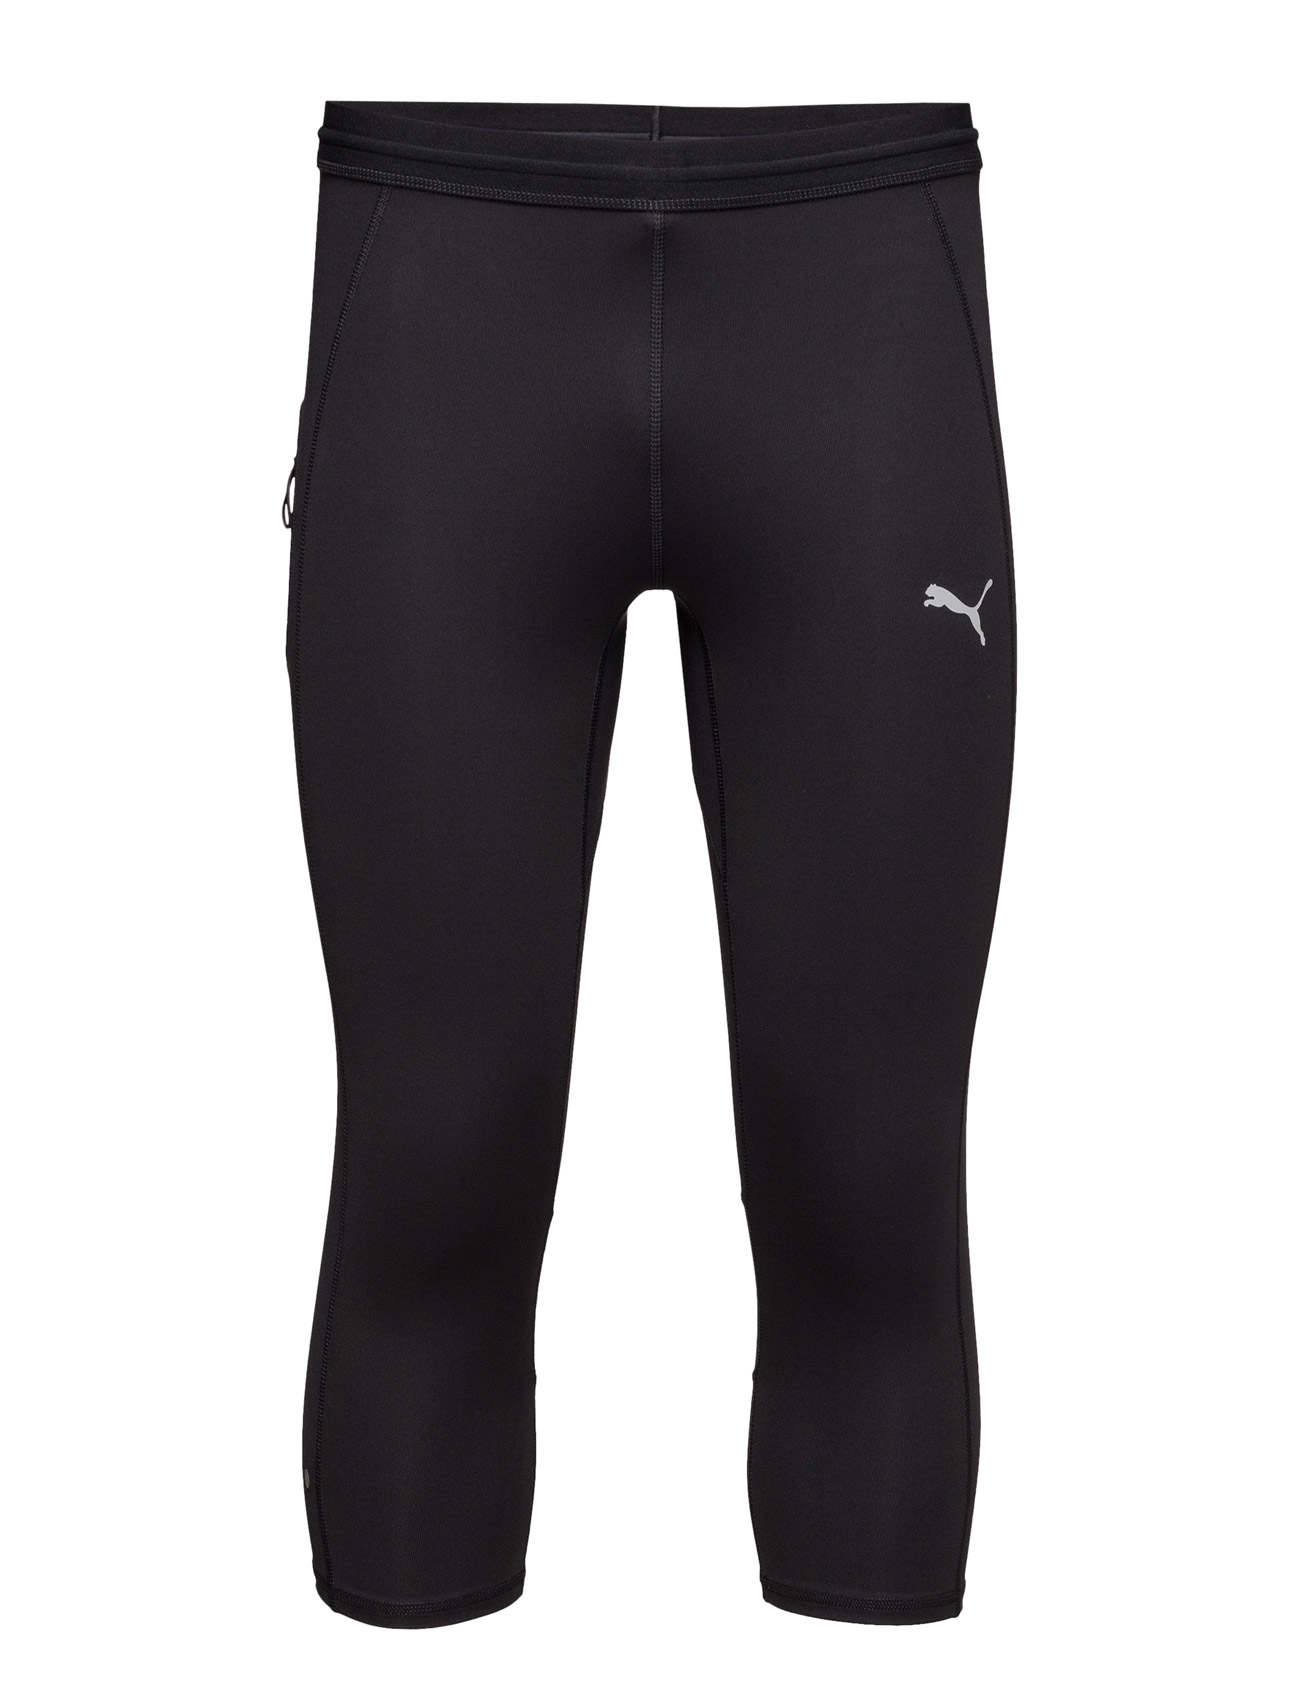 Speed 3/4 Tight PUMA SPORT Løbe tights til Mænd i Sort